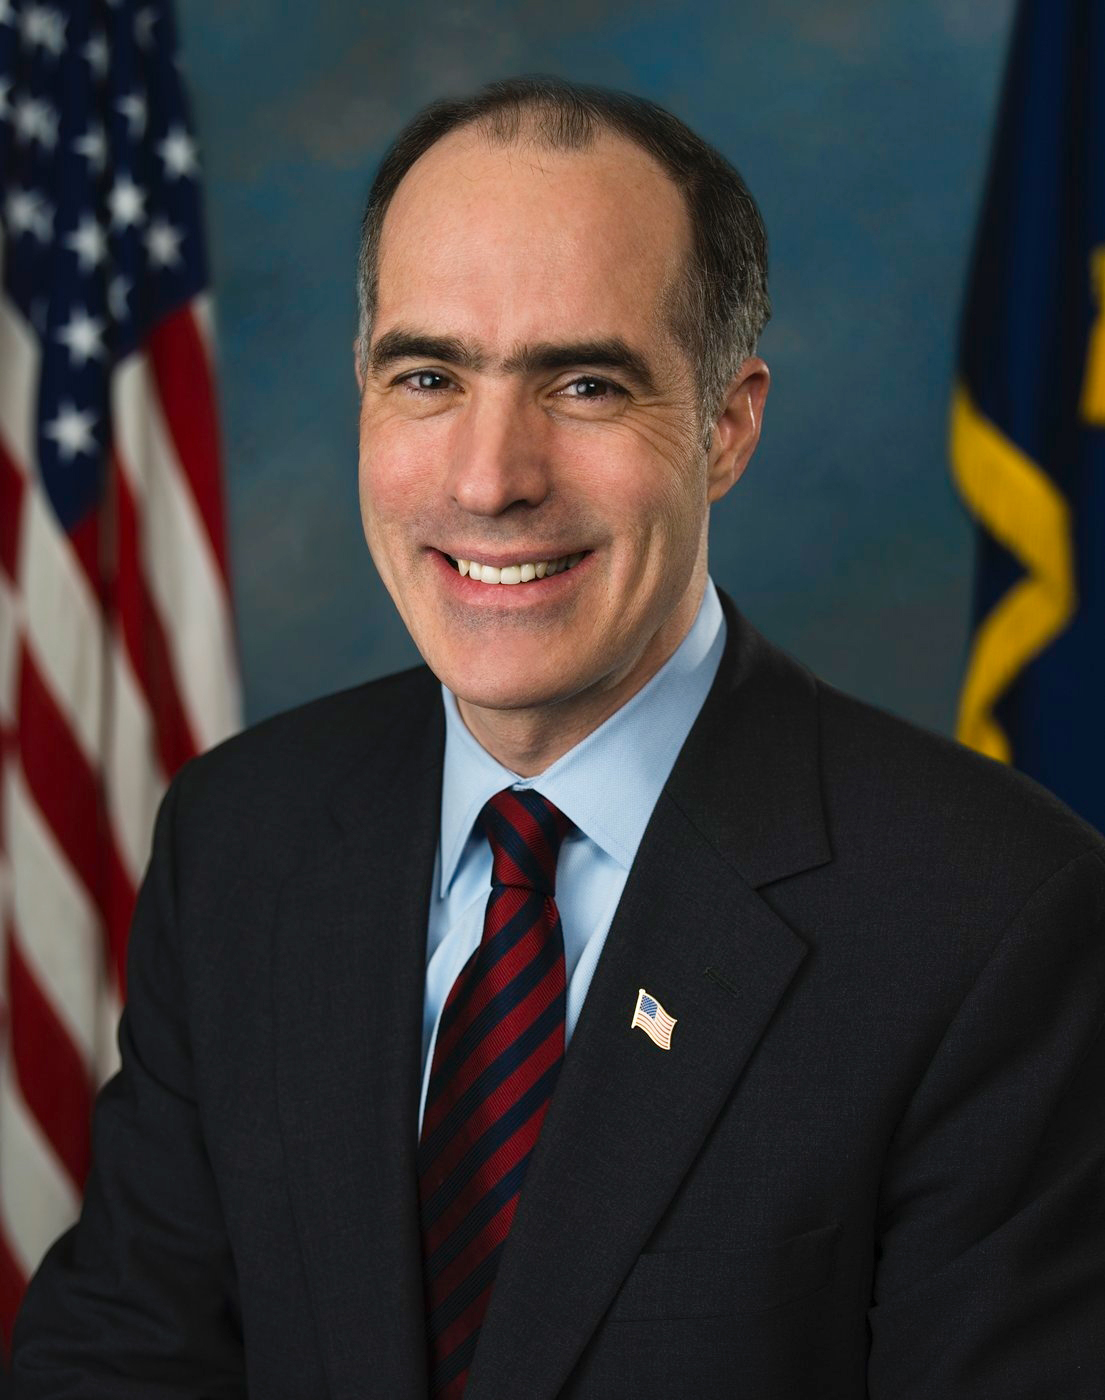 Bob_Casey,_official_Senate_photo_portrait,_c2008.jpg